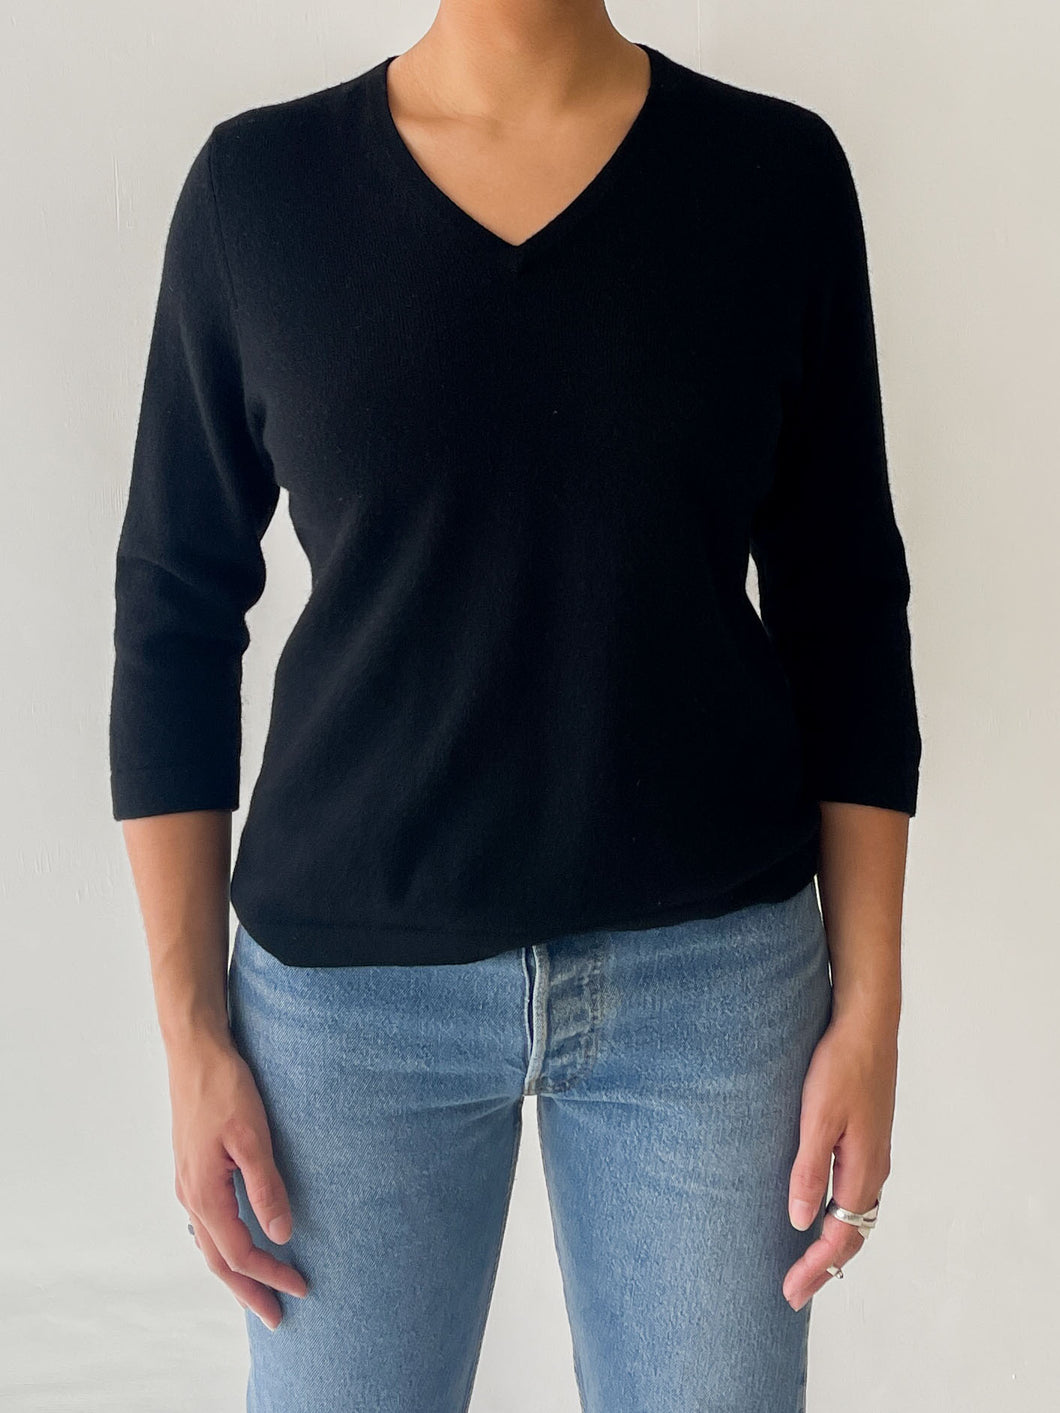 Black Cashmere Short Sleeve (M)